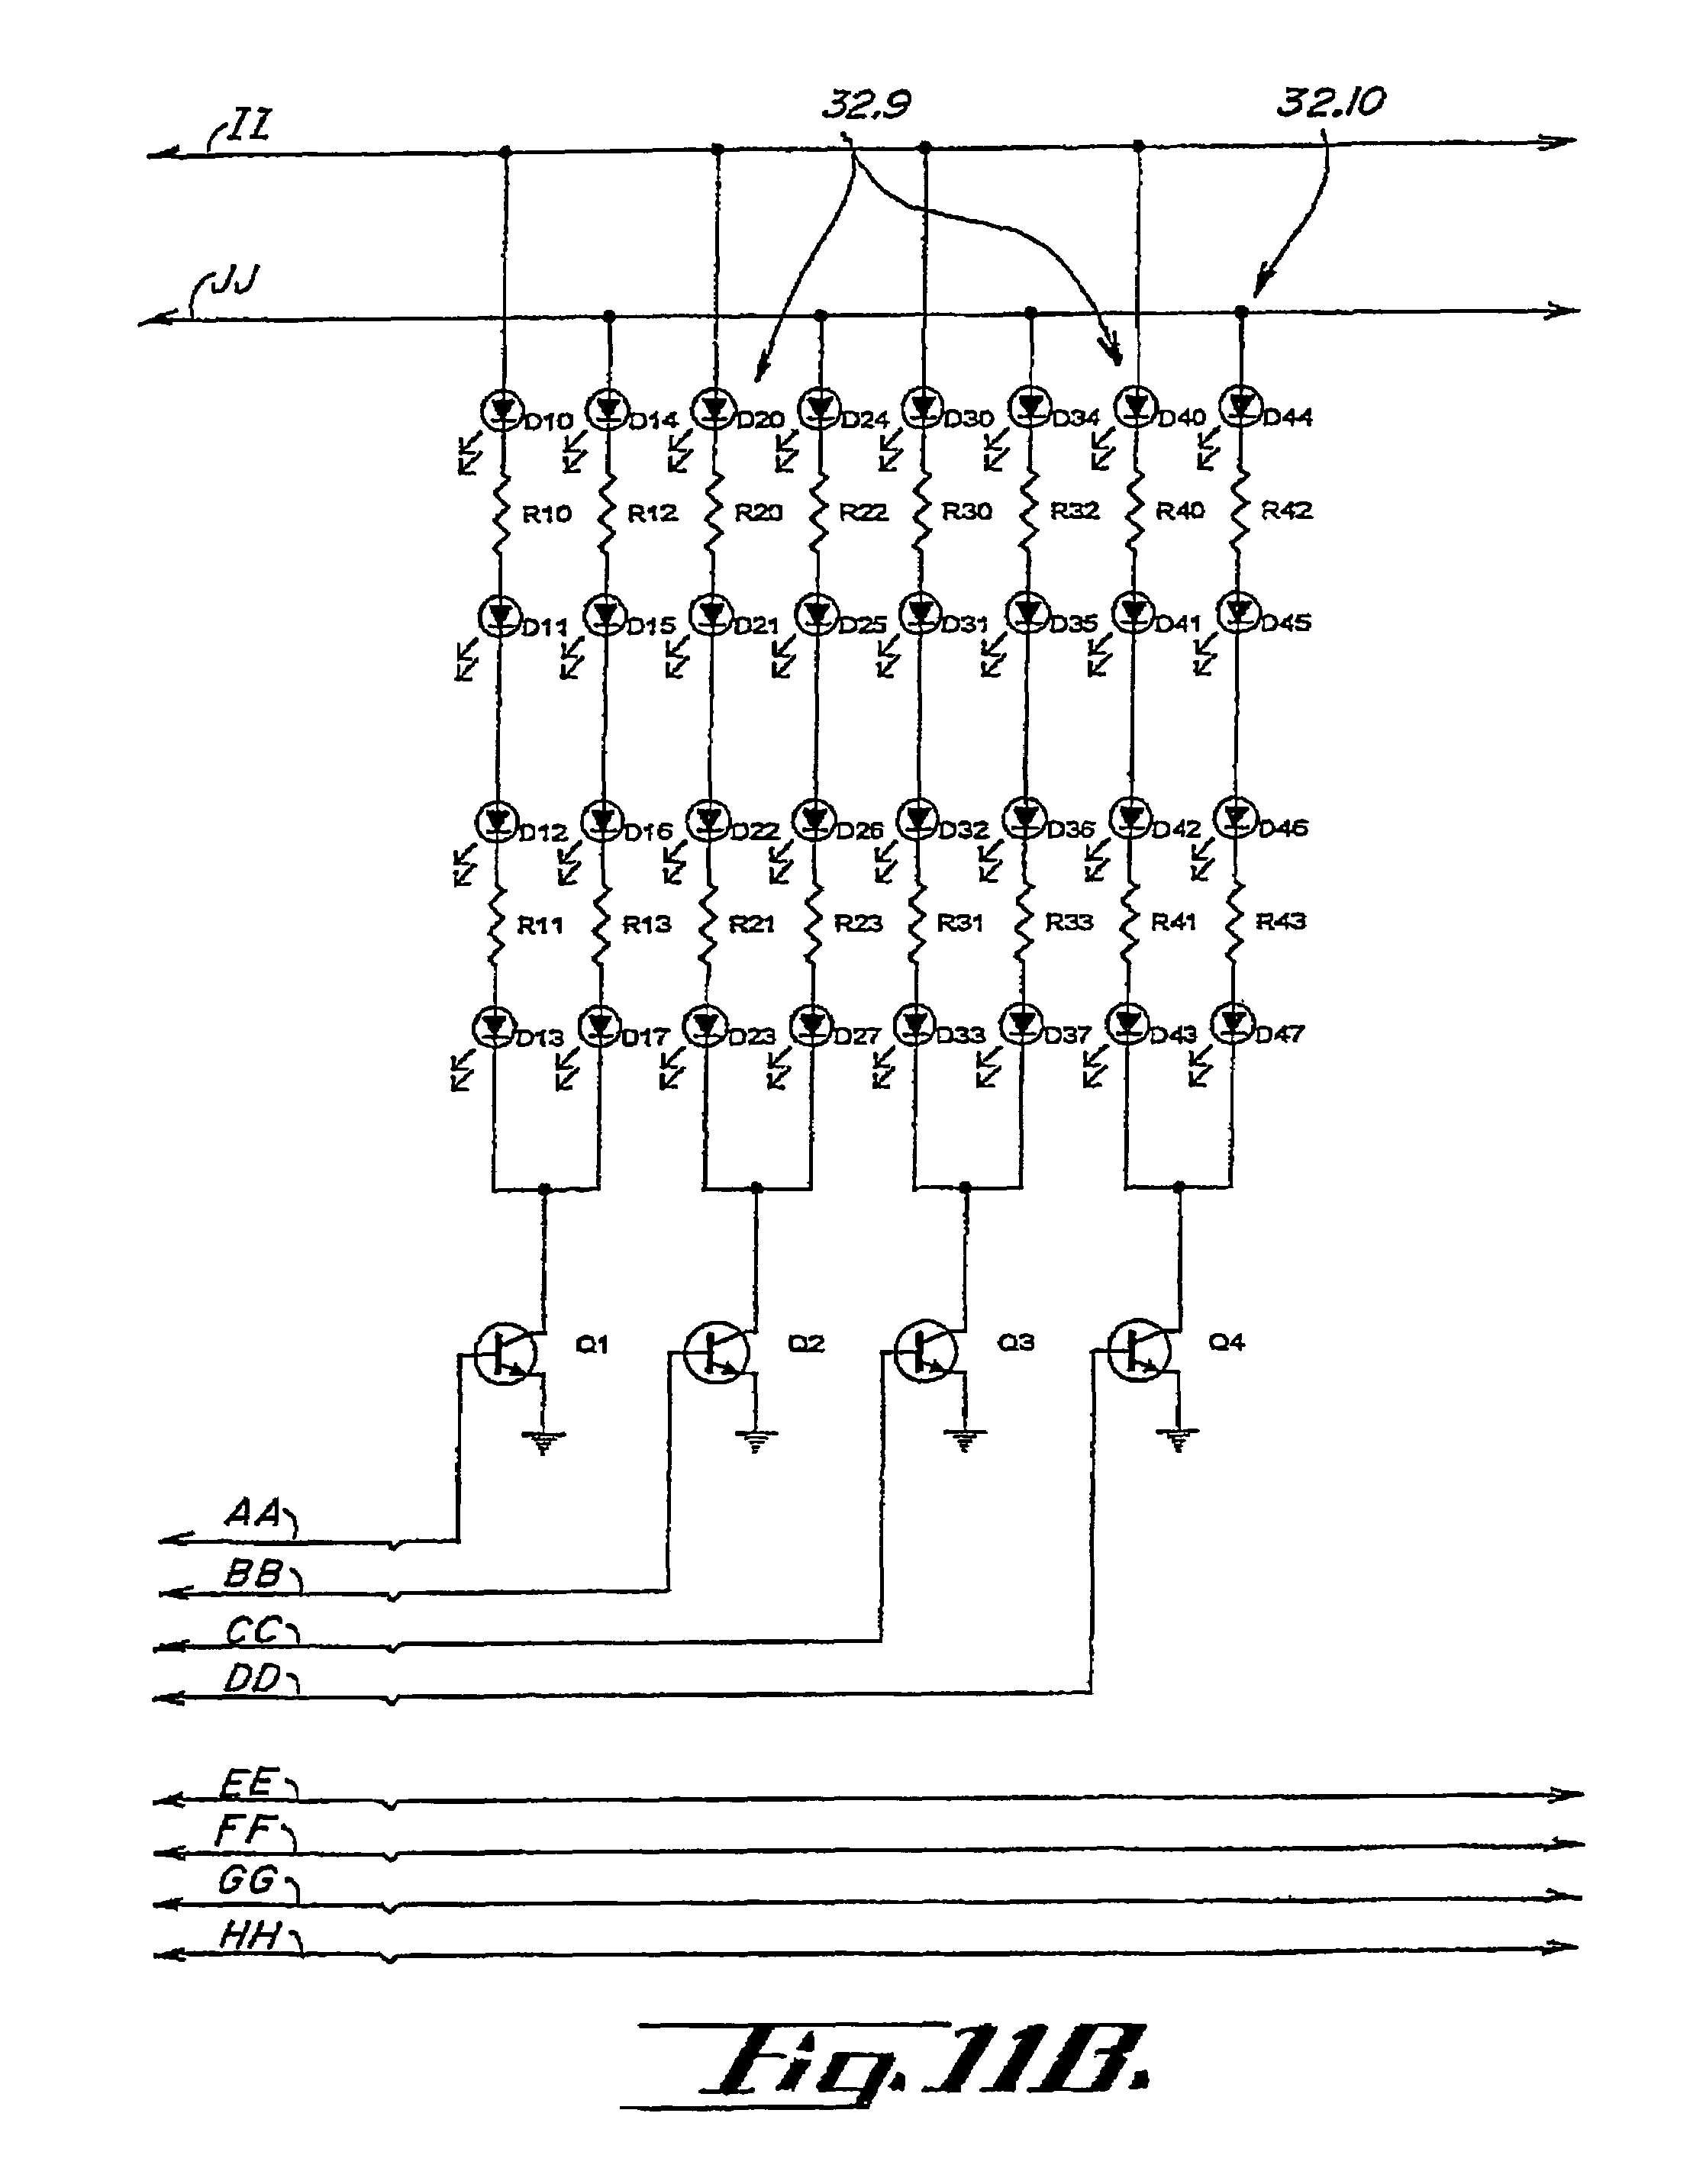 US07561036 20090714 D00006 911ep wiring diagram 911ep ls12 flash patterns \u2022 wiring diagrams code 3 mx7000 wiring diagram at reclaimingppi.co